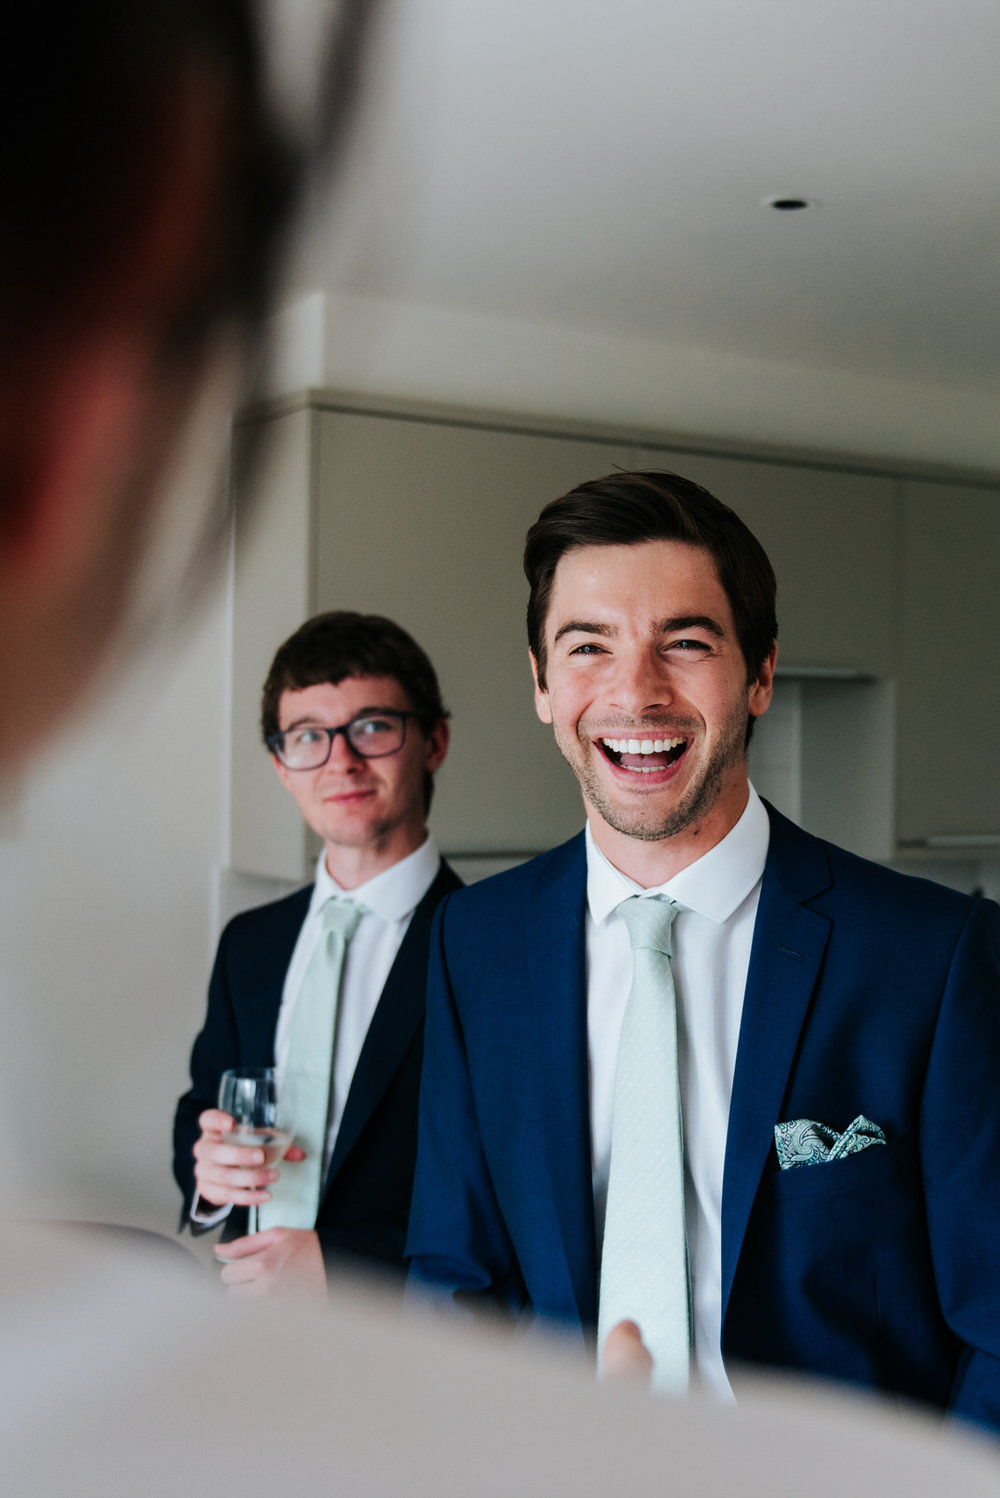 Groom incredibly happy that it is his wedding day while talking